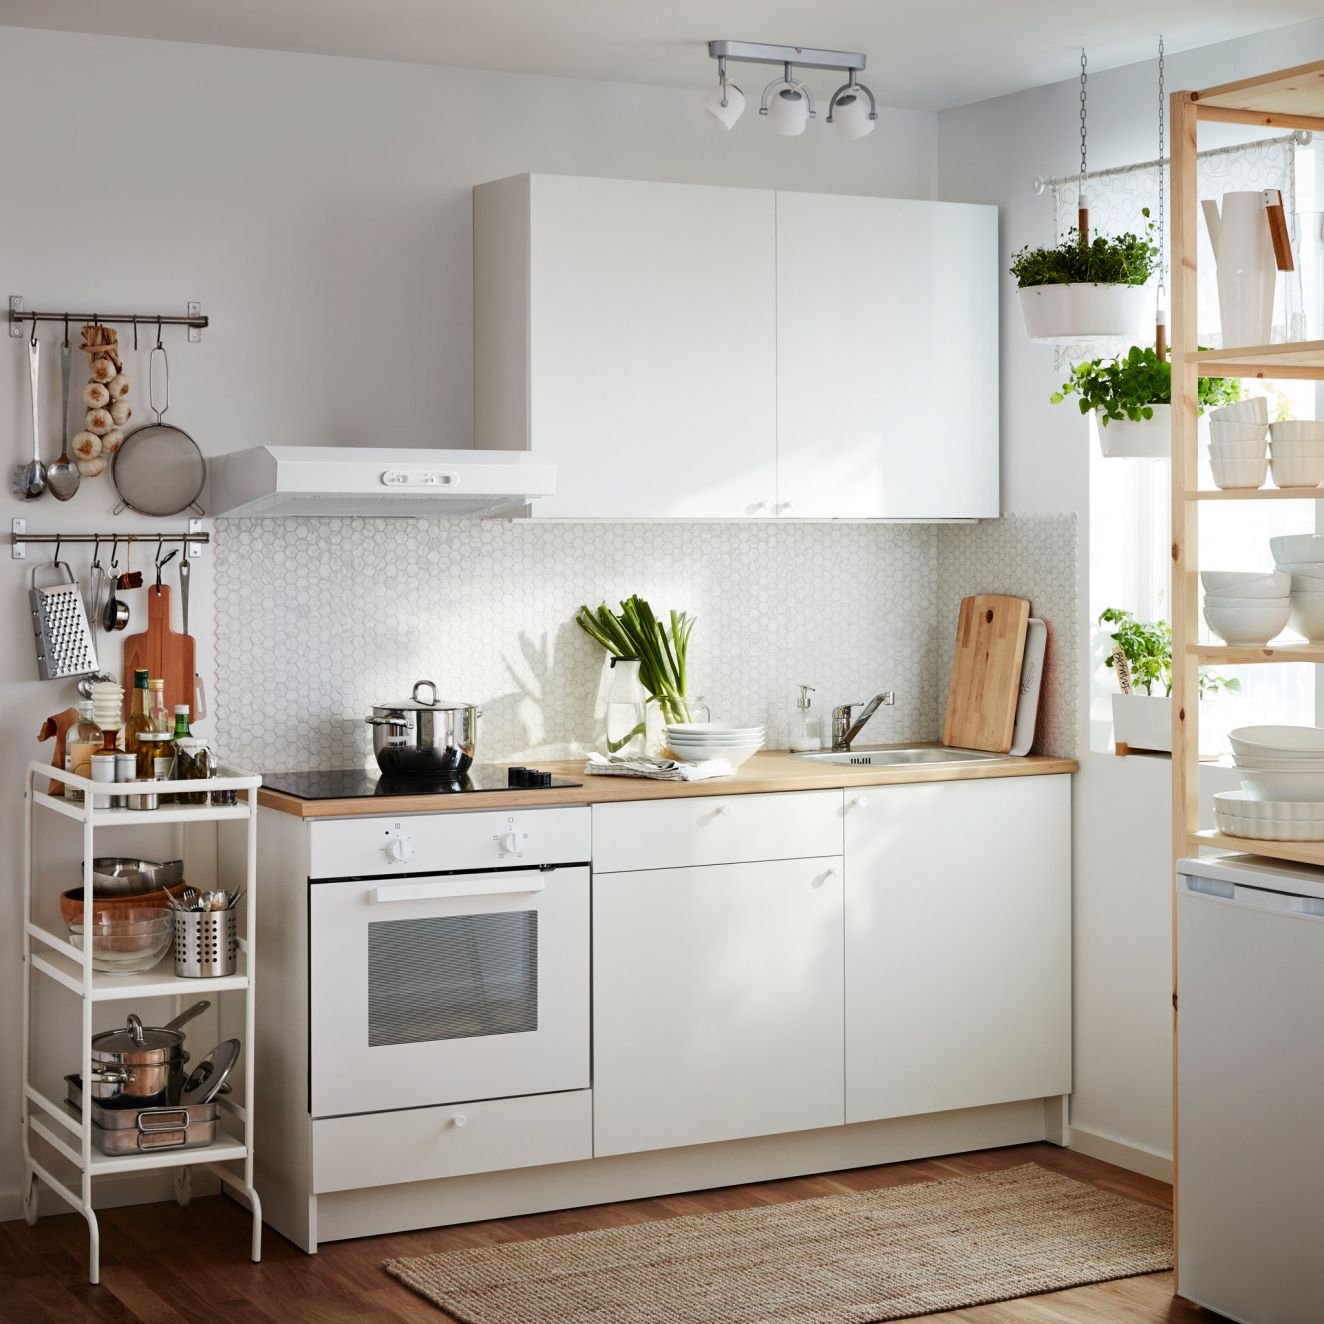 Ikea Small Kitchen Design - Best Interior Wall Paint Check more at ...